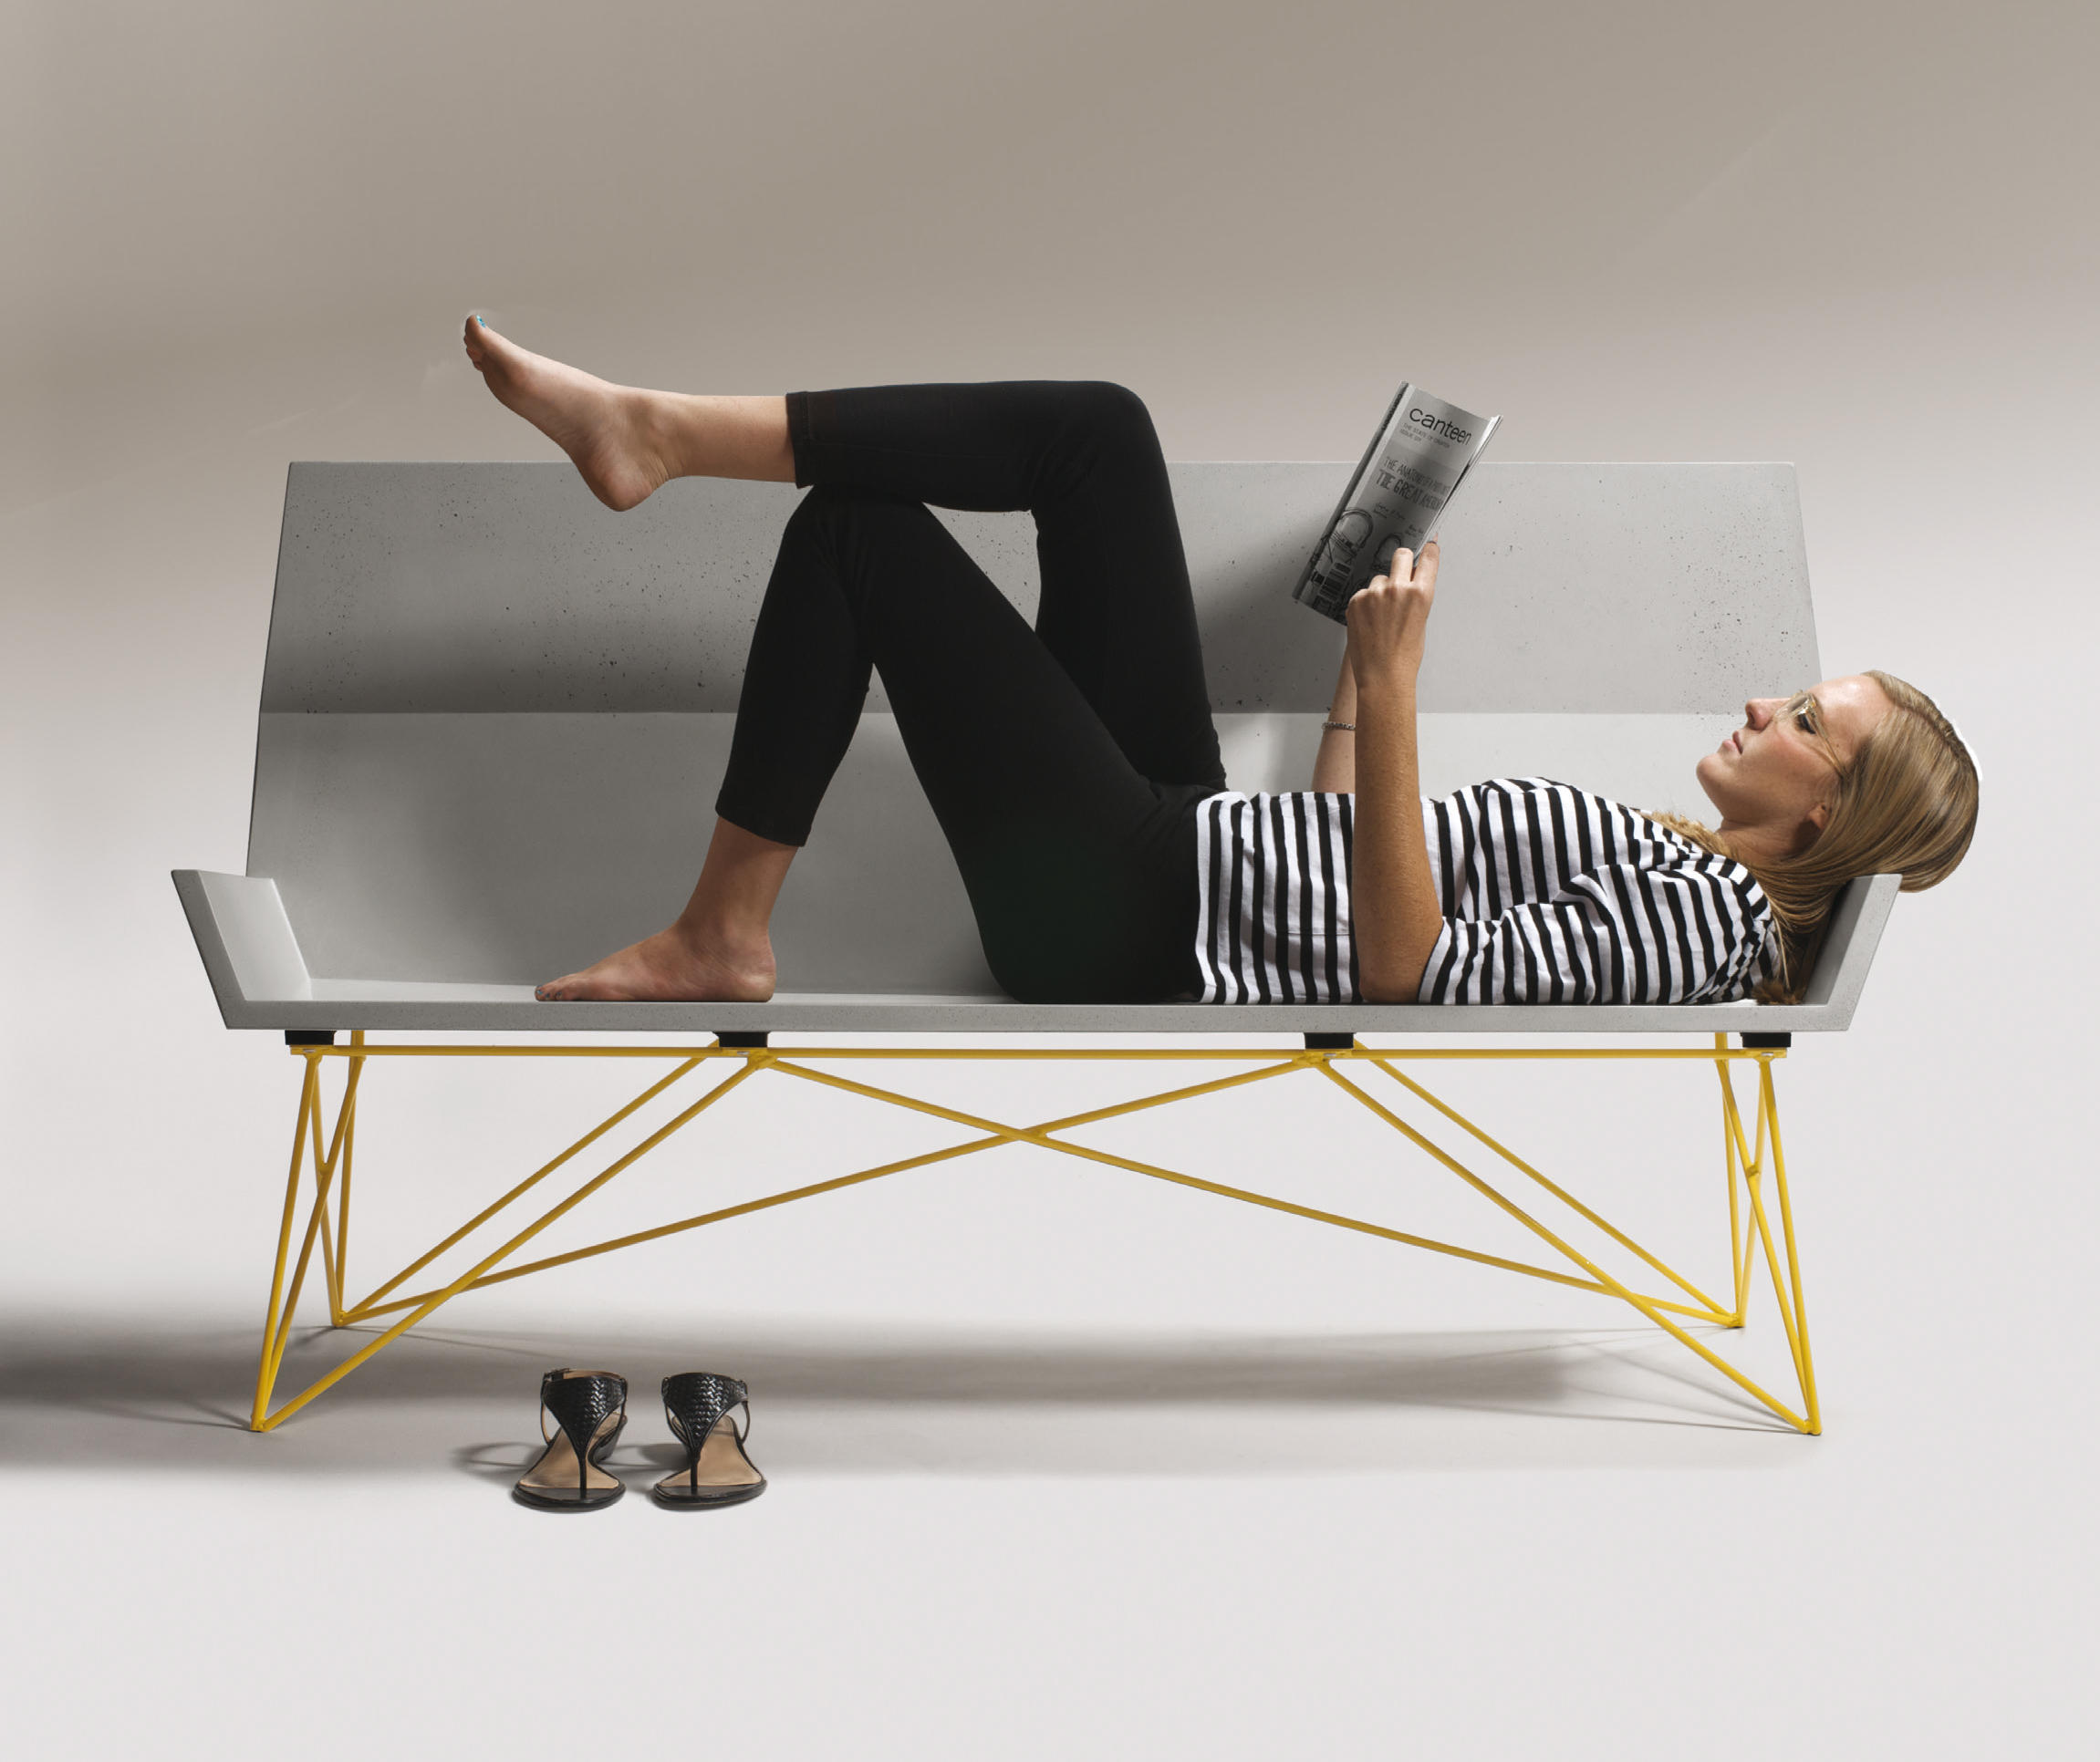 Inclinare Bench Bancs De Hard Goods Architonic